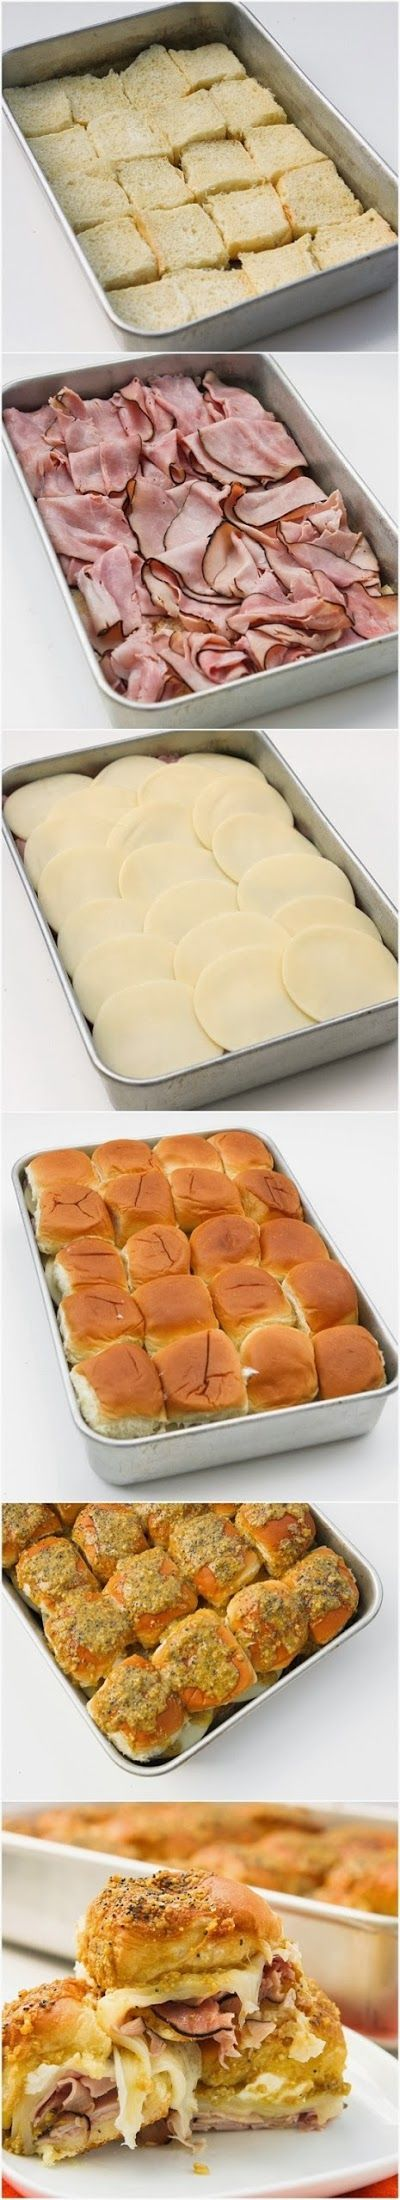 How To make hot ham and cheese sandwiches